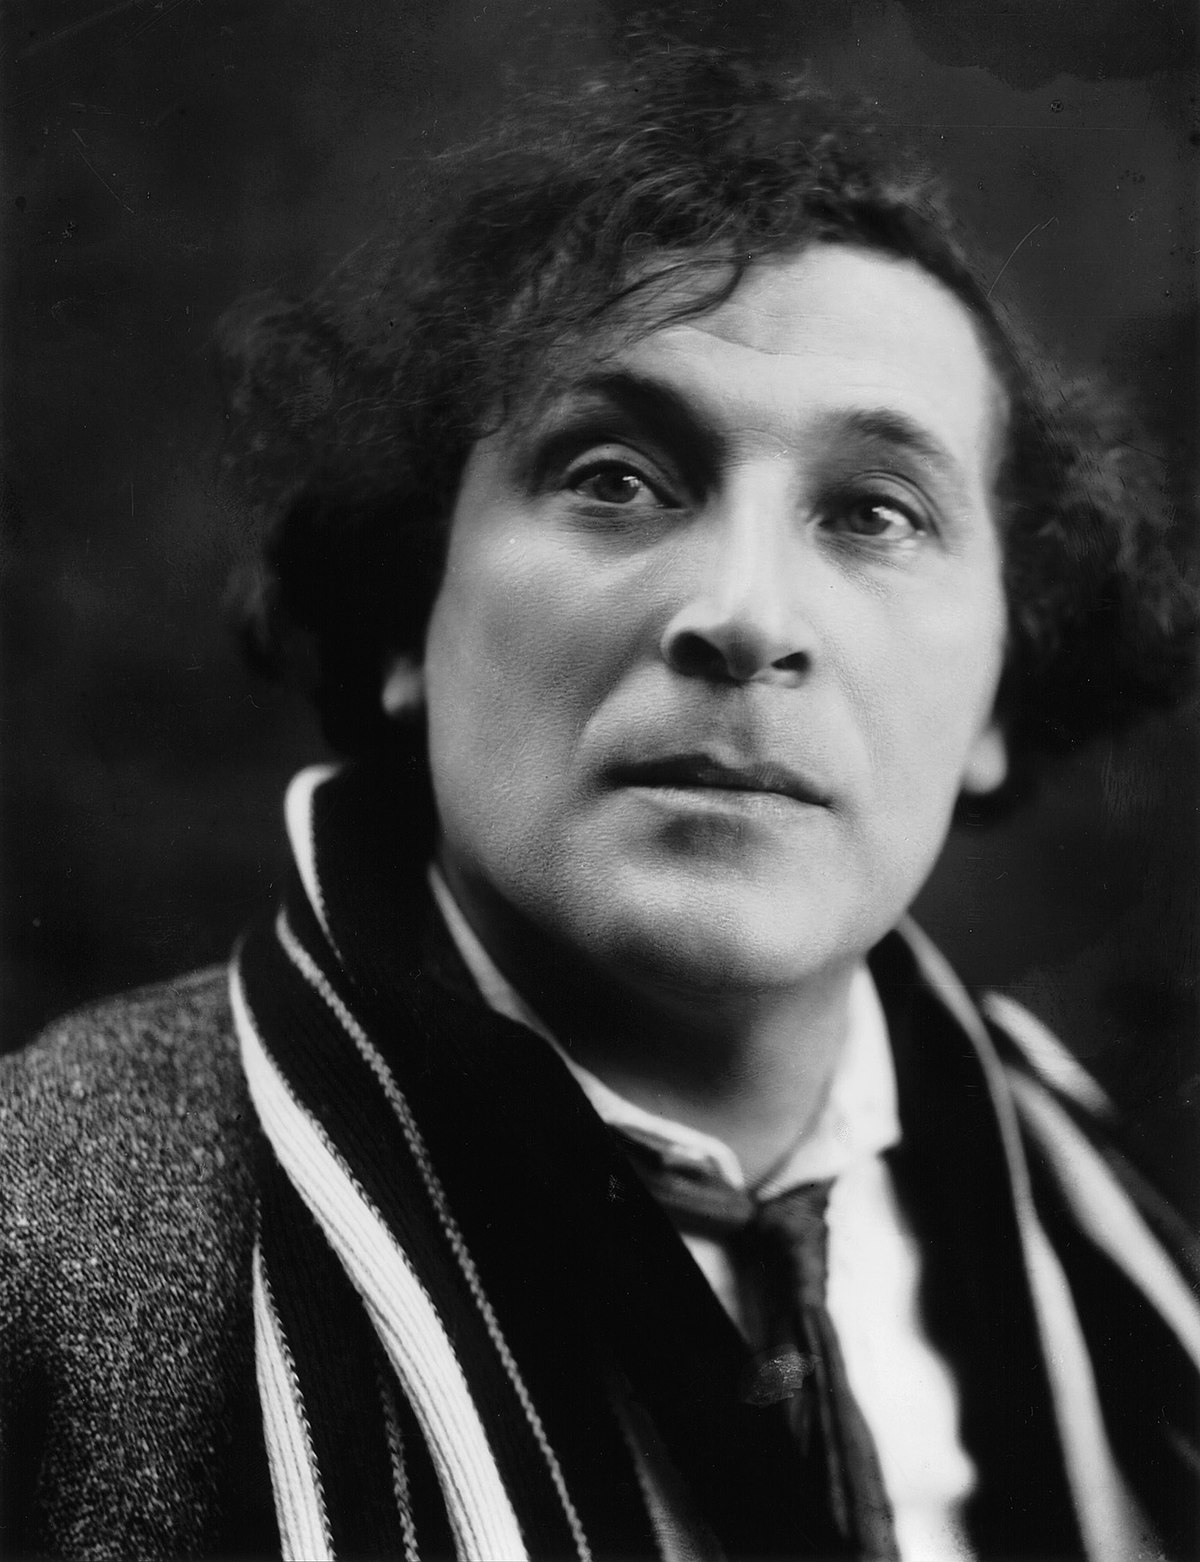 marc chagall urodziny : marc chagall wife :  marc chagall documentaire en 2020/2021